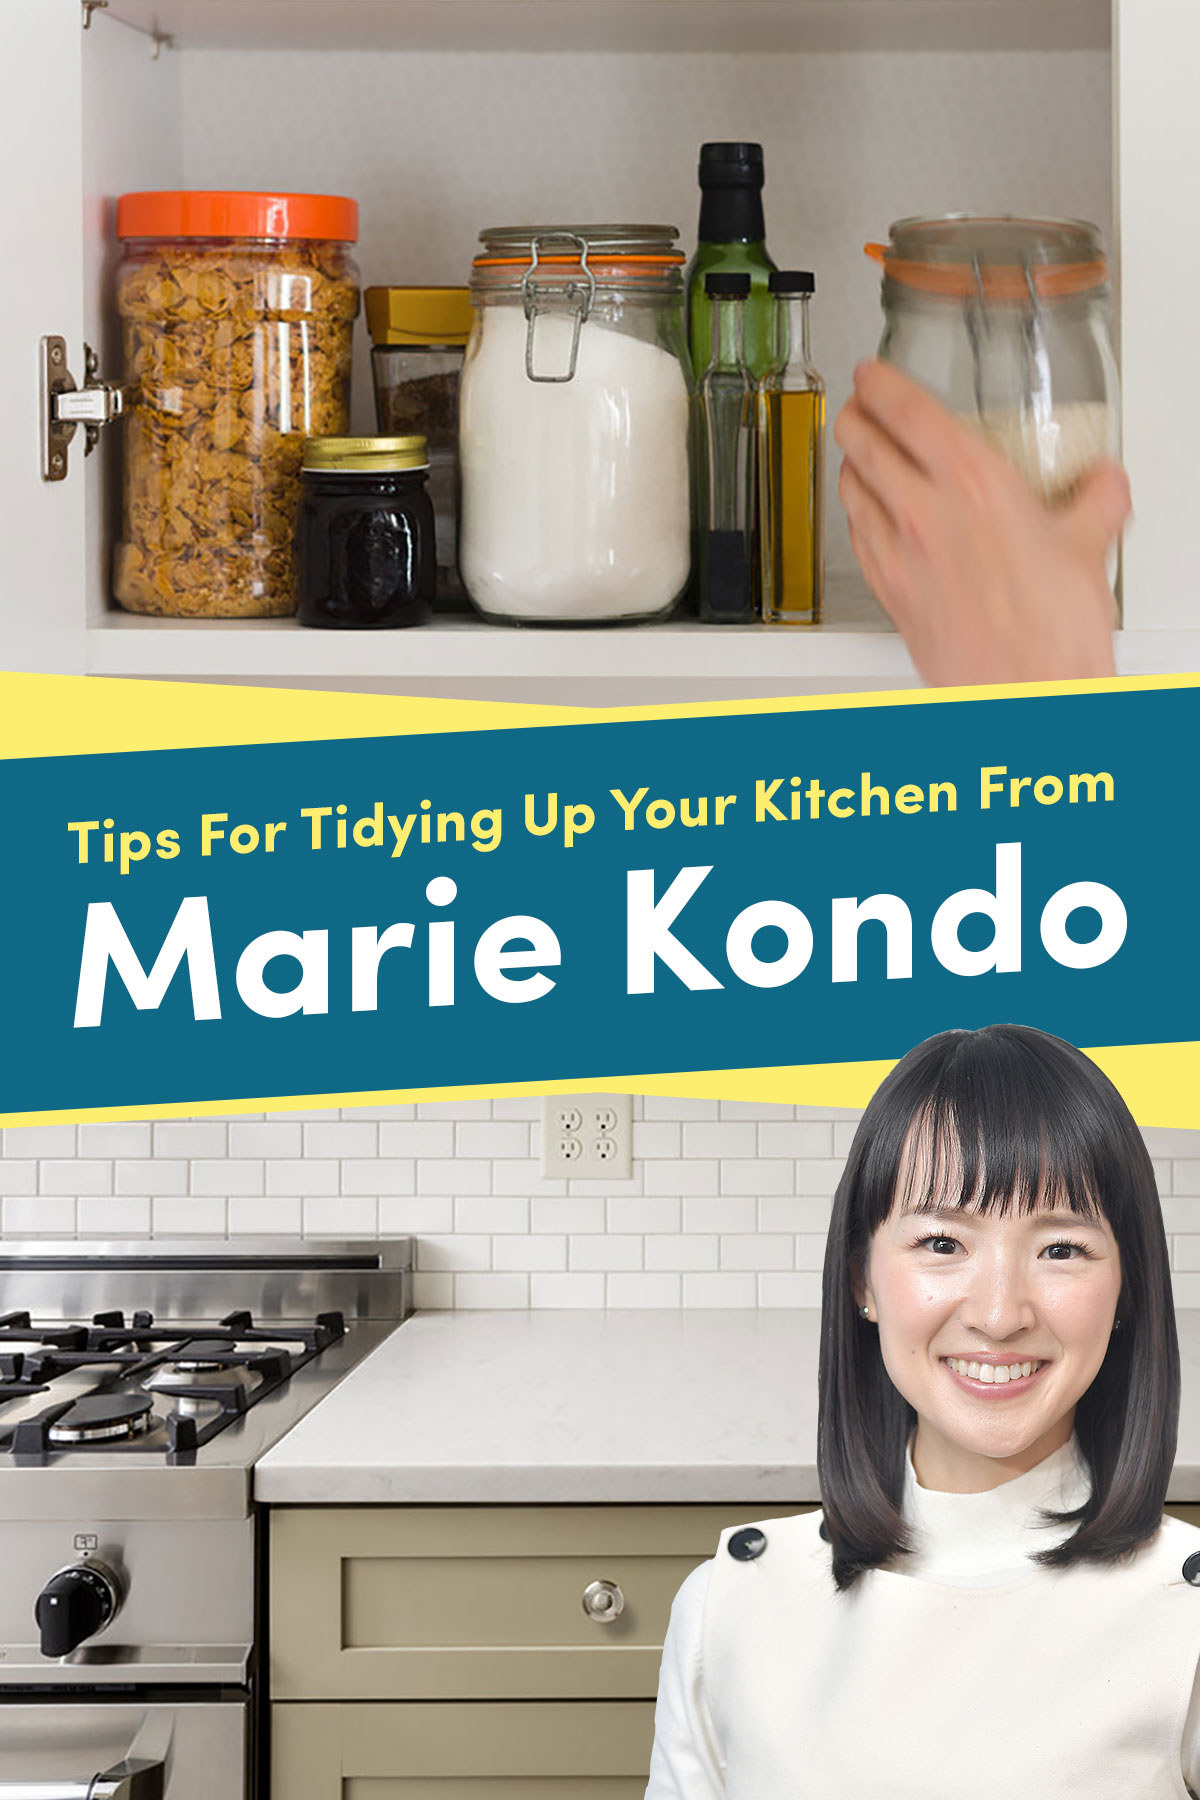 11 Tips For Tidying Up Your Kitchen From Marie Kondo